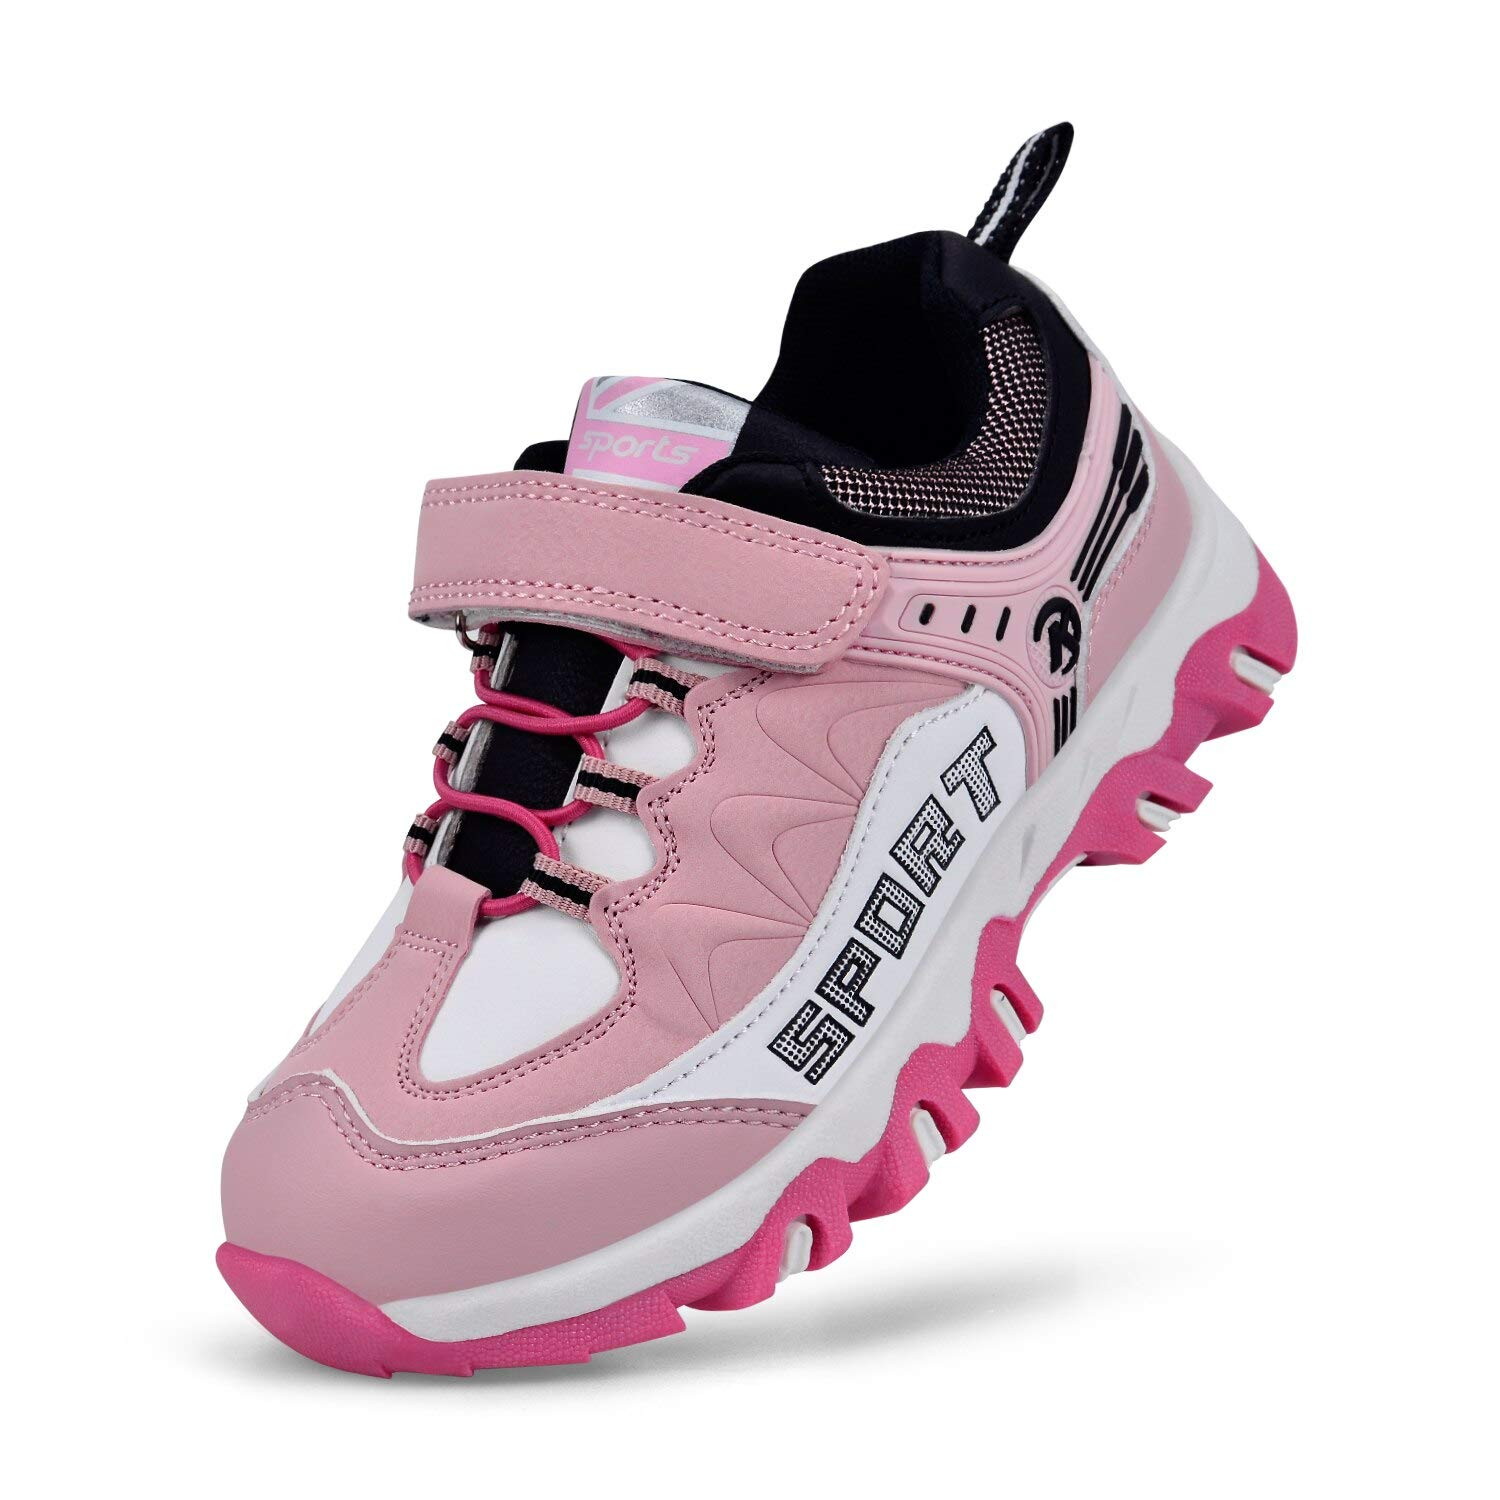 MARSVOVO Kids Sneakers Waterproof Outdoor Non-Slip Hiking Shoes Pink/White 1 Little Kid